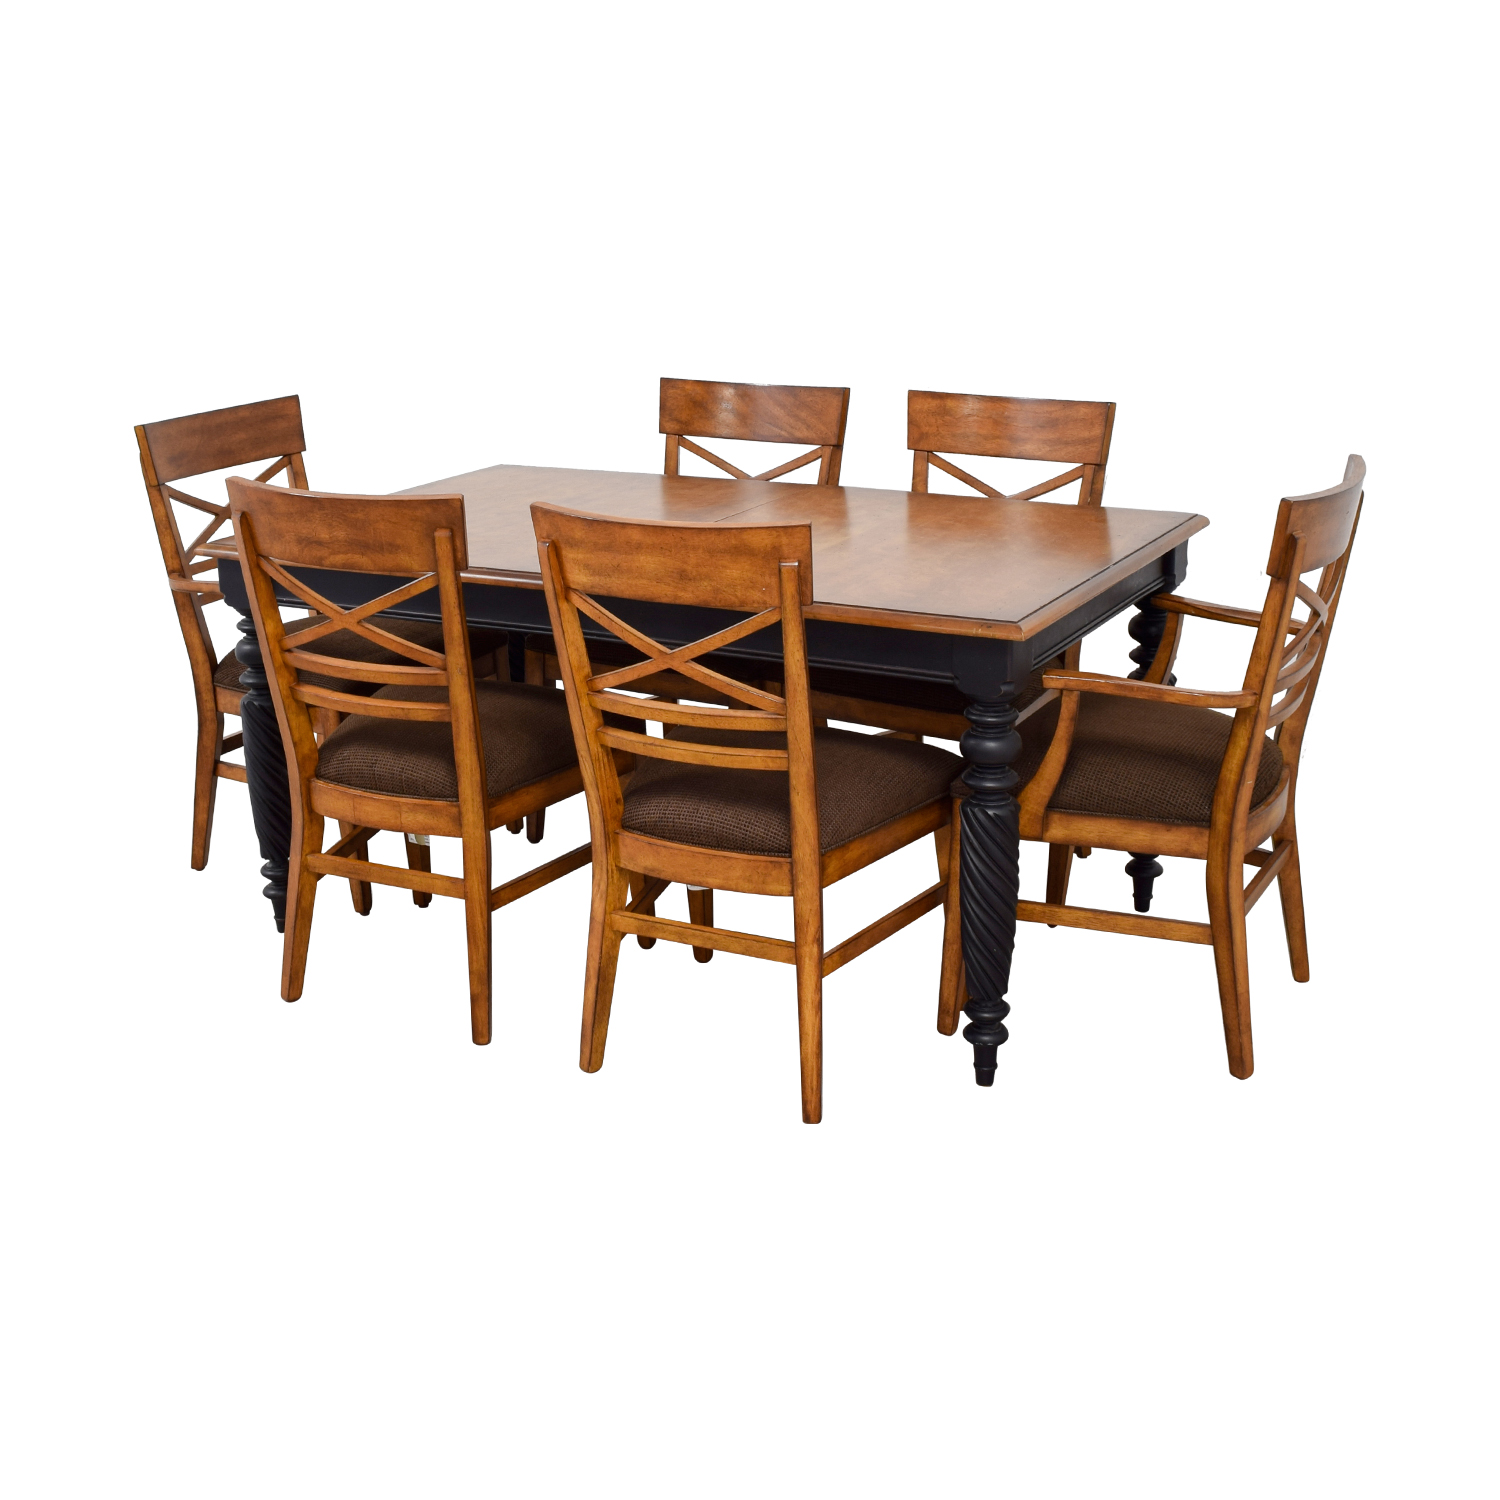 89 Off Ethan Allen Ethan Allen Livingston Dining Set